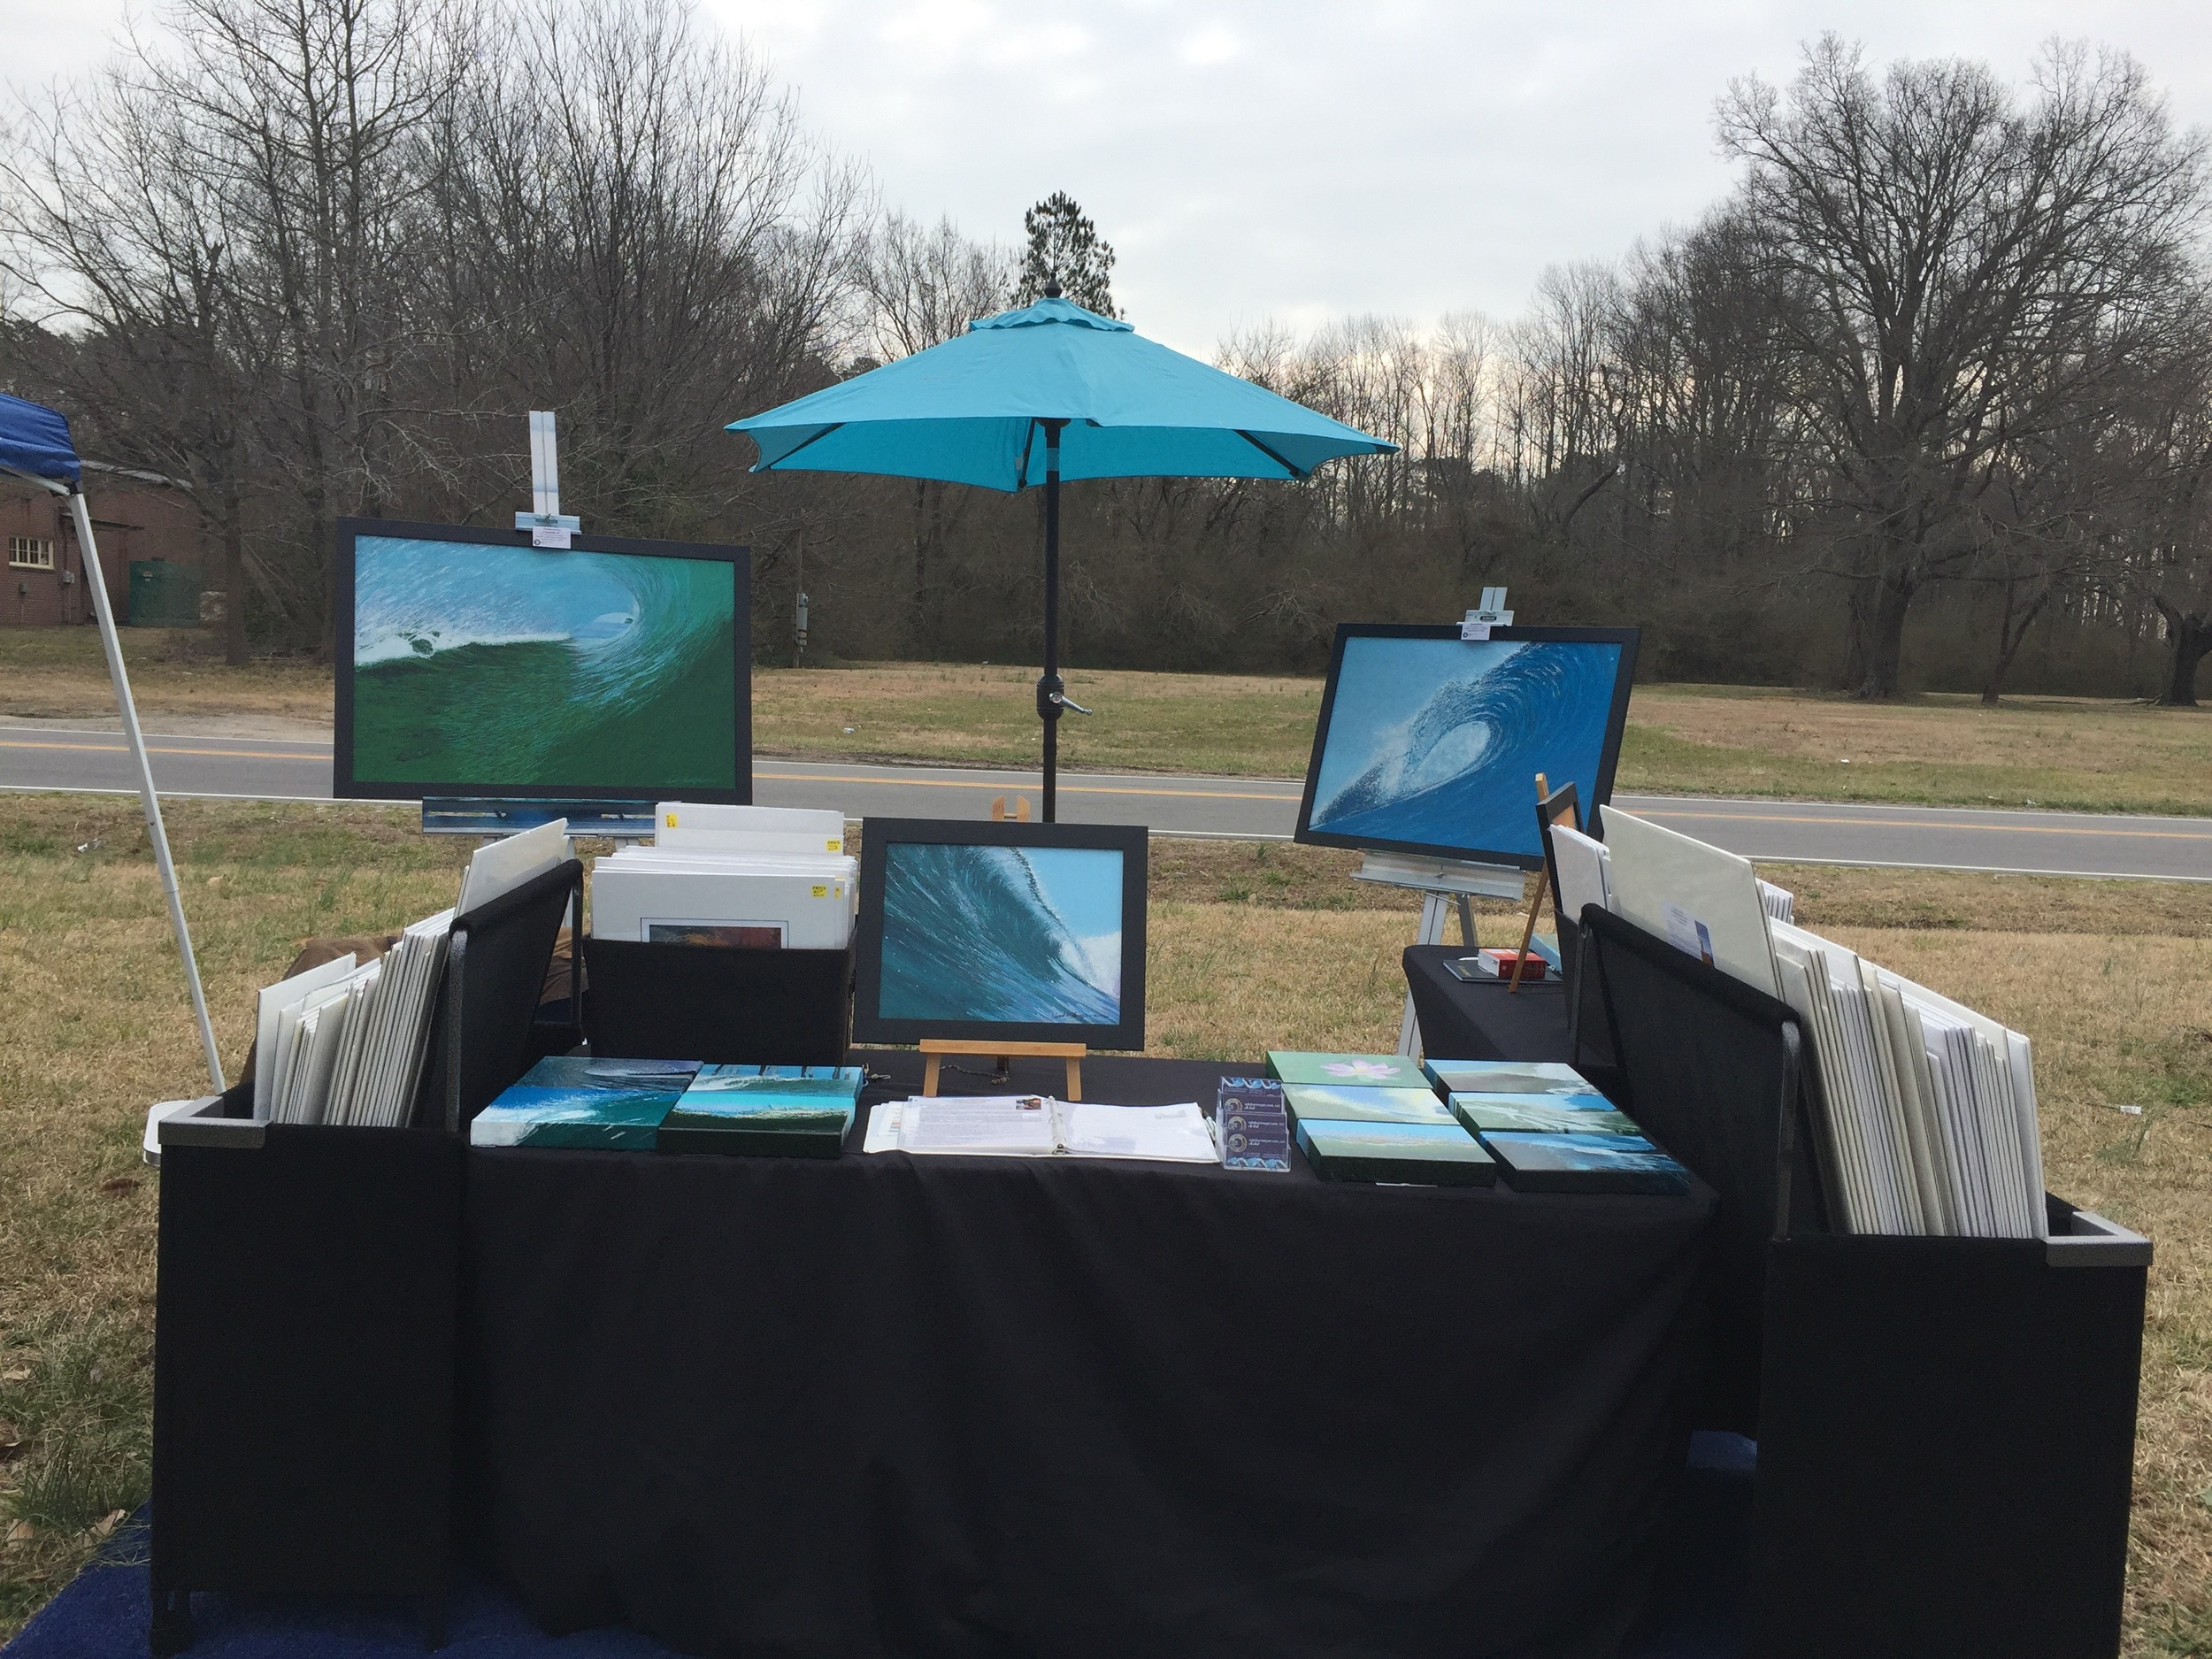 Just had a great show at the Tar Roof gallery in Pungo. I chose to go topless and have no tent since it was a one day gig. It turned out to be an amazing event and sales were phenomenal!